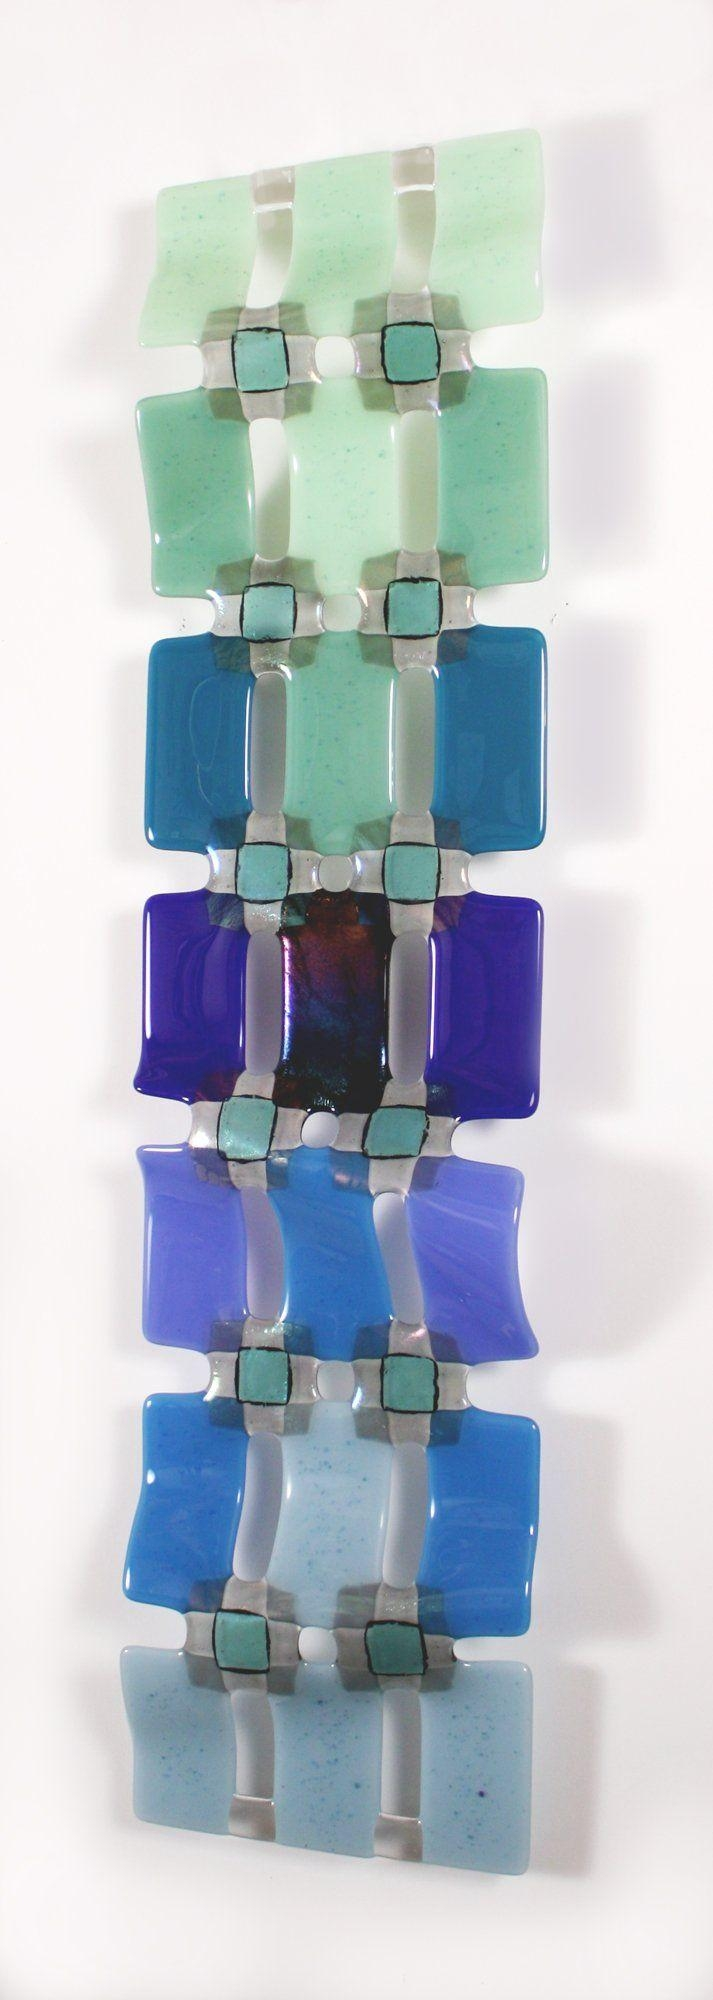 398 Best Glass: Art Pieces Images On Pinterest | Fused Glass Throughout Fused Glass Wall Art Panels (View 20 of 20)